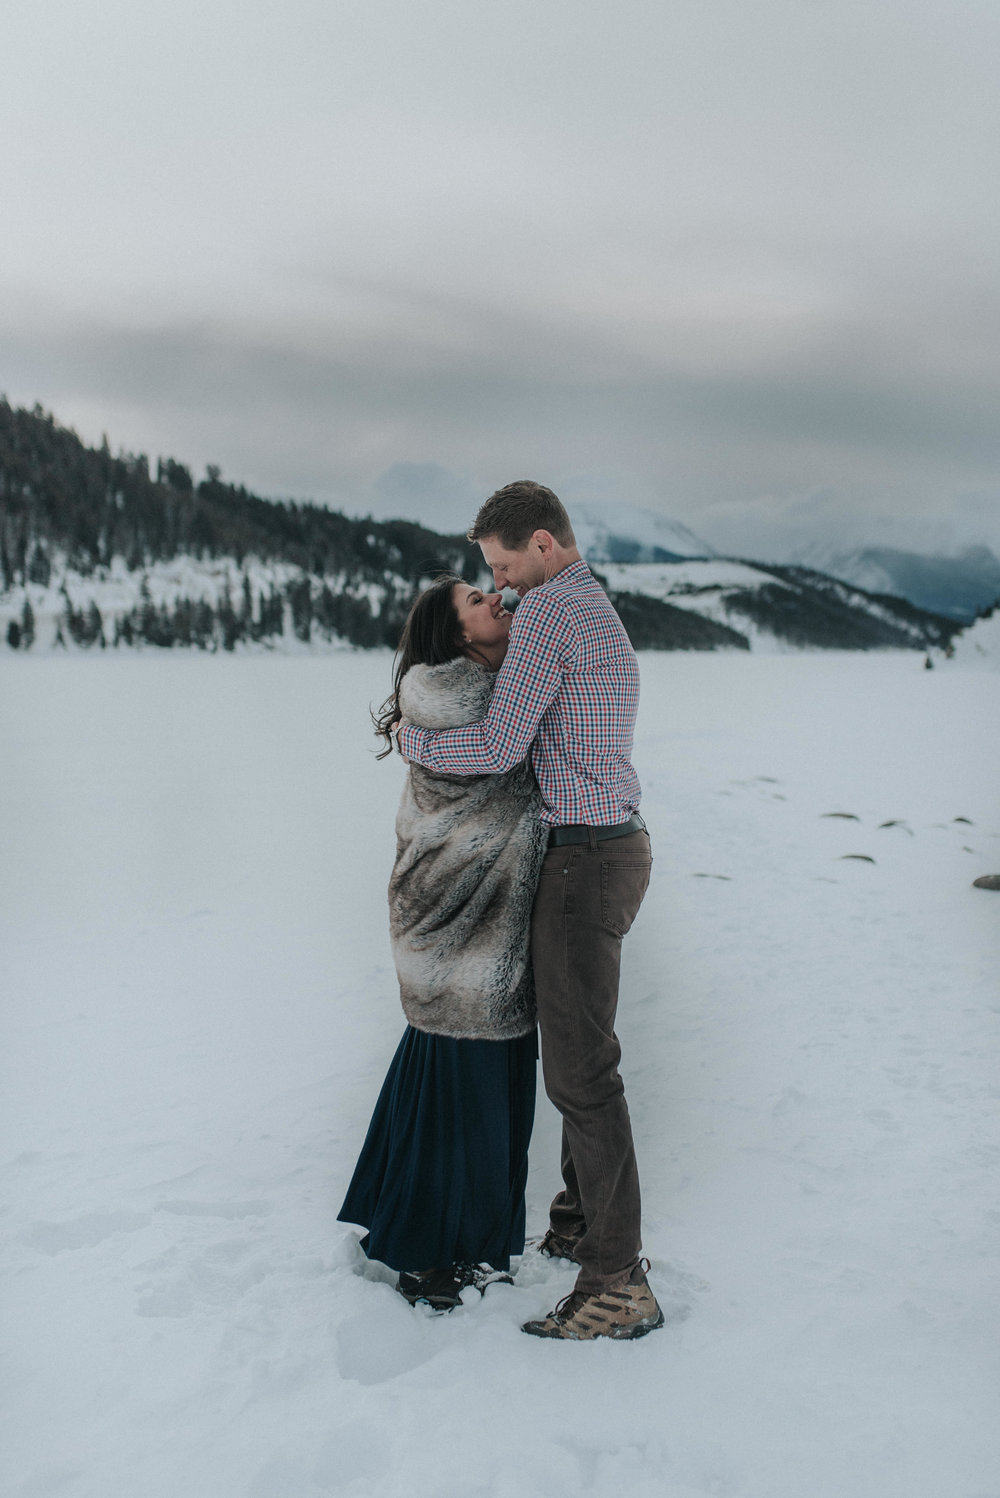 Breckenridge, Colorado wedding and engagement photographer